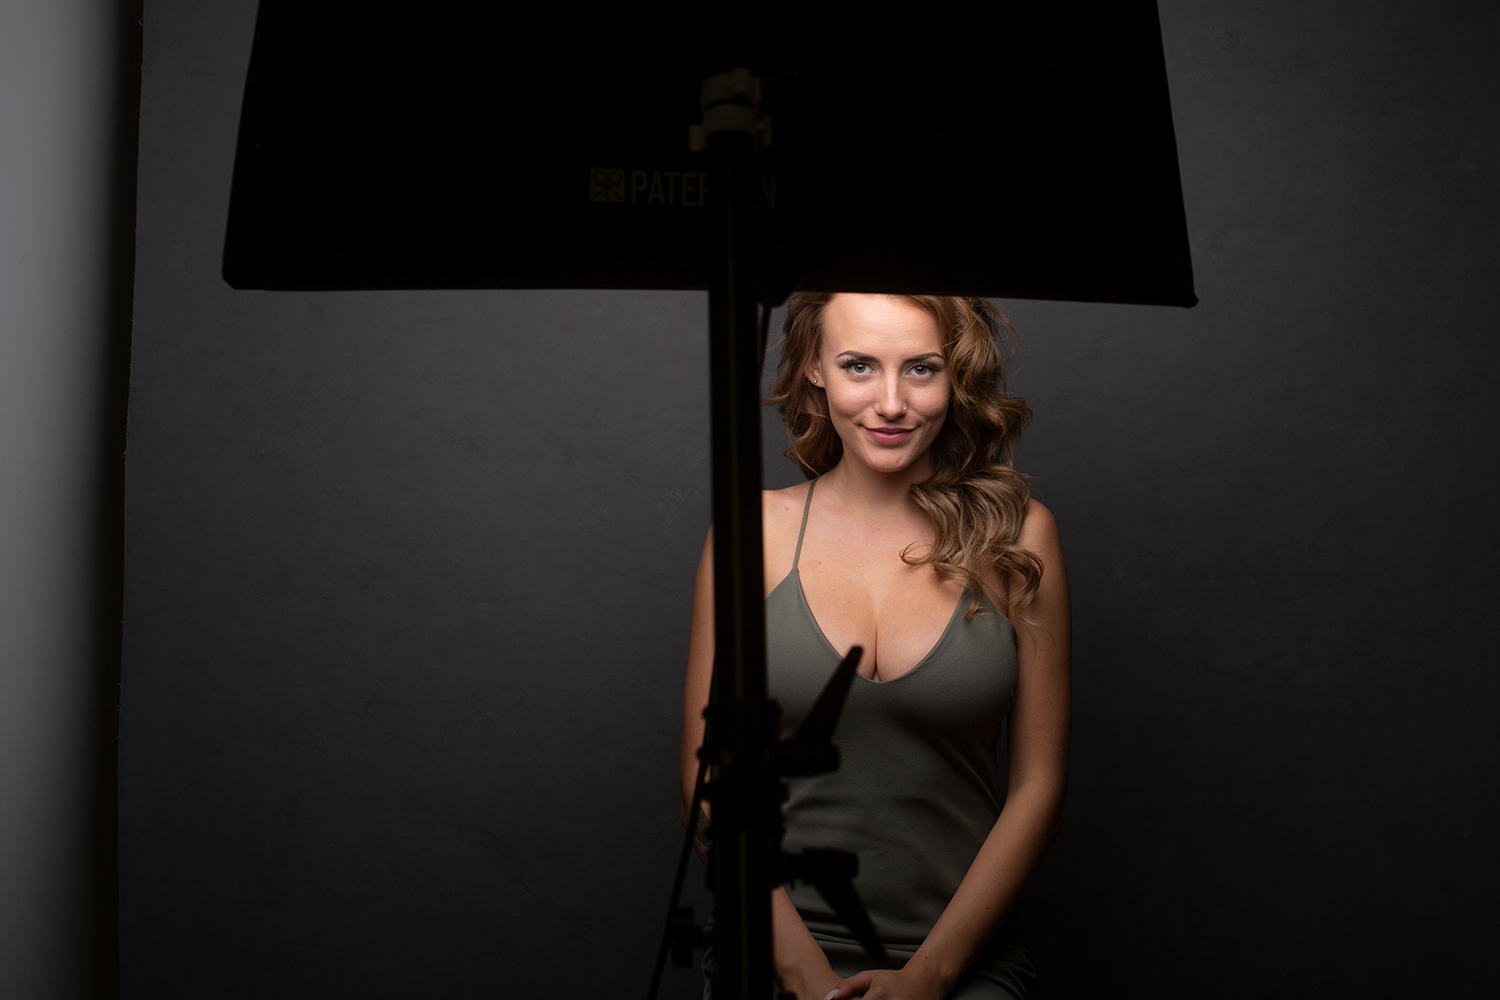 Image: A small(ish) softbox placed in front of and above the subject creates soft light with shadows...